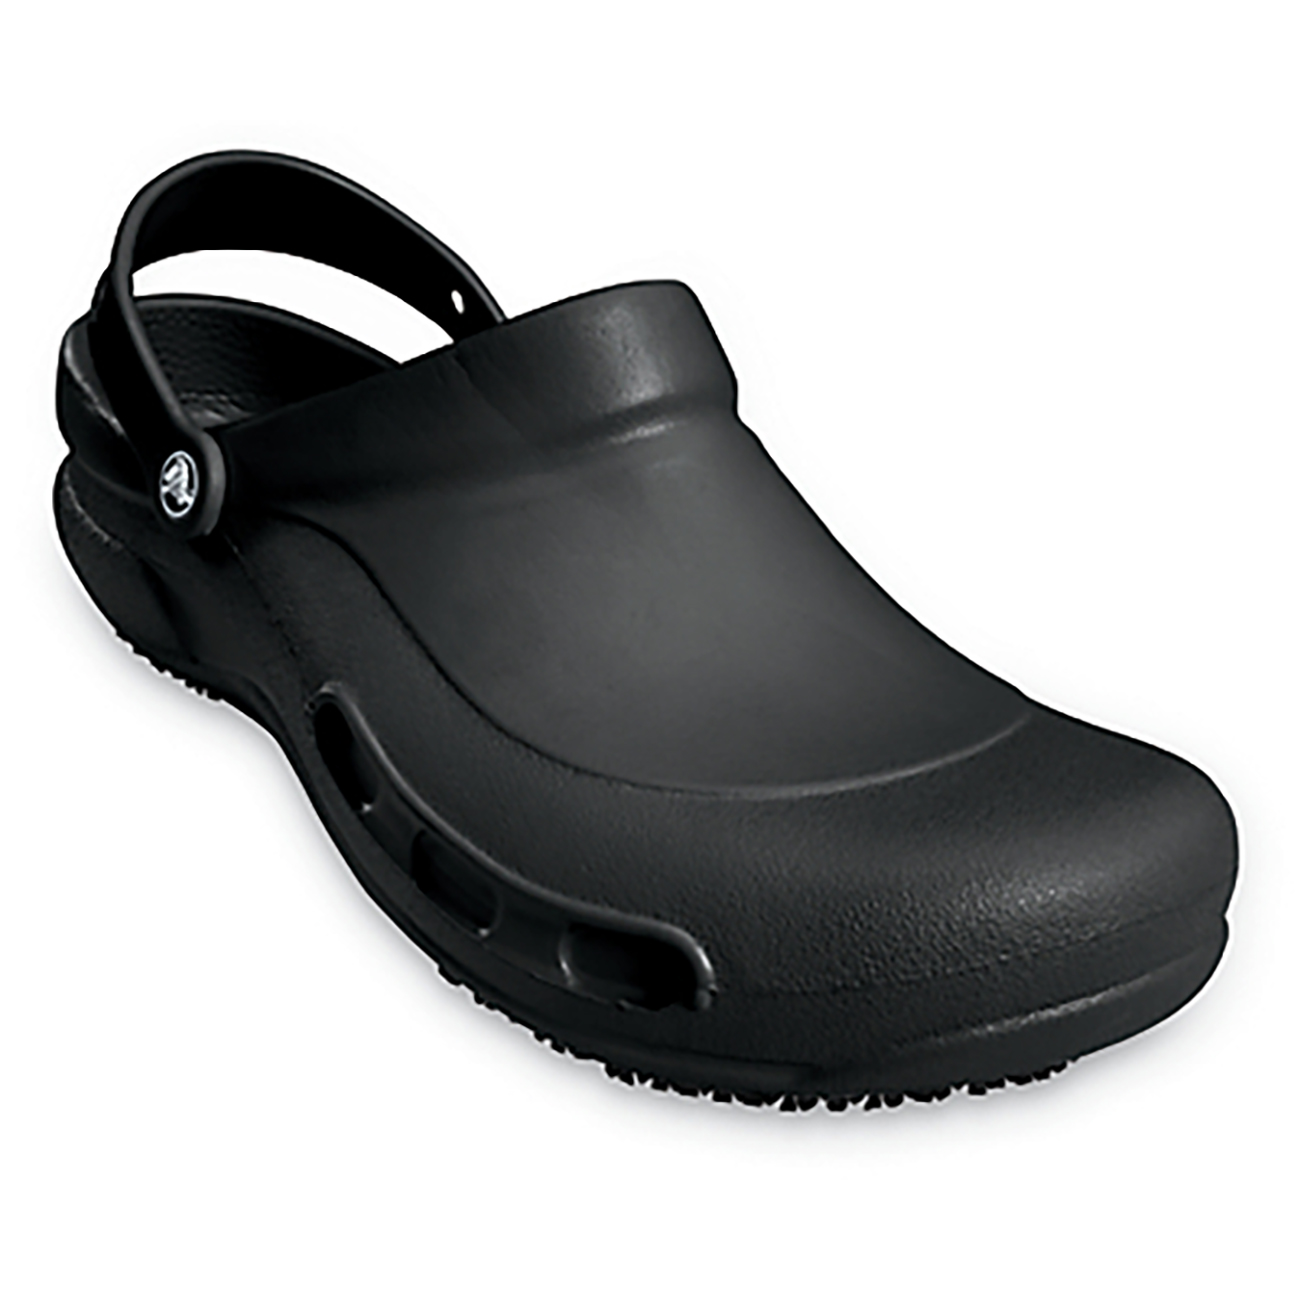 Unisex Adults Crocs Bistro Clog